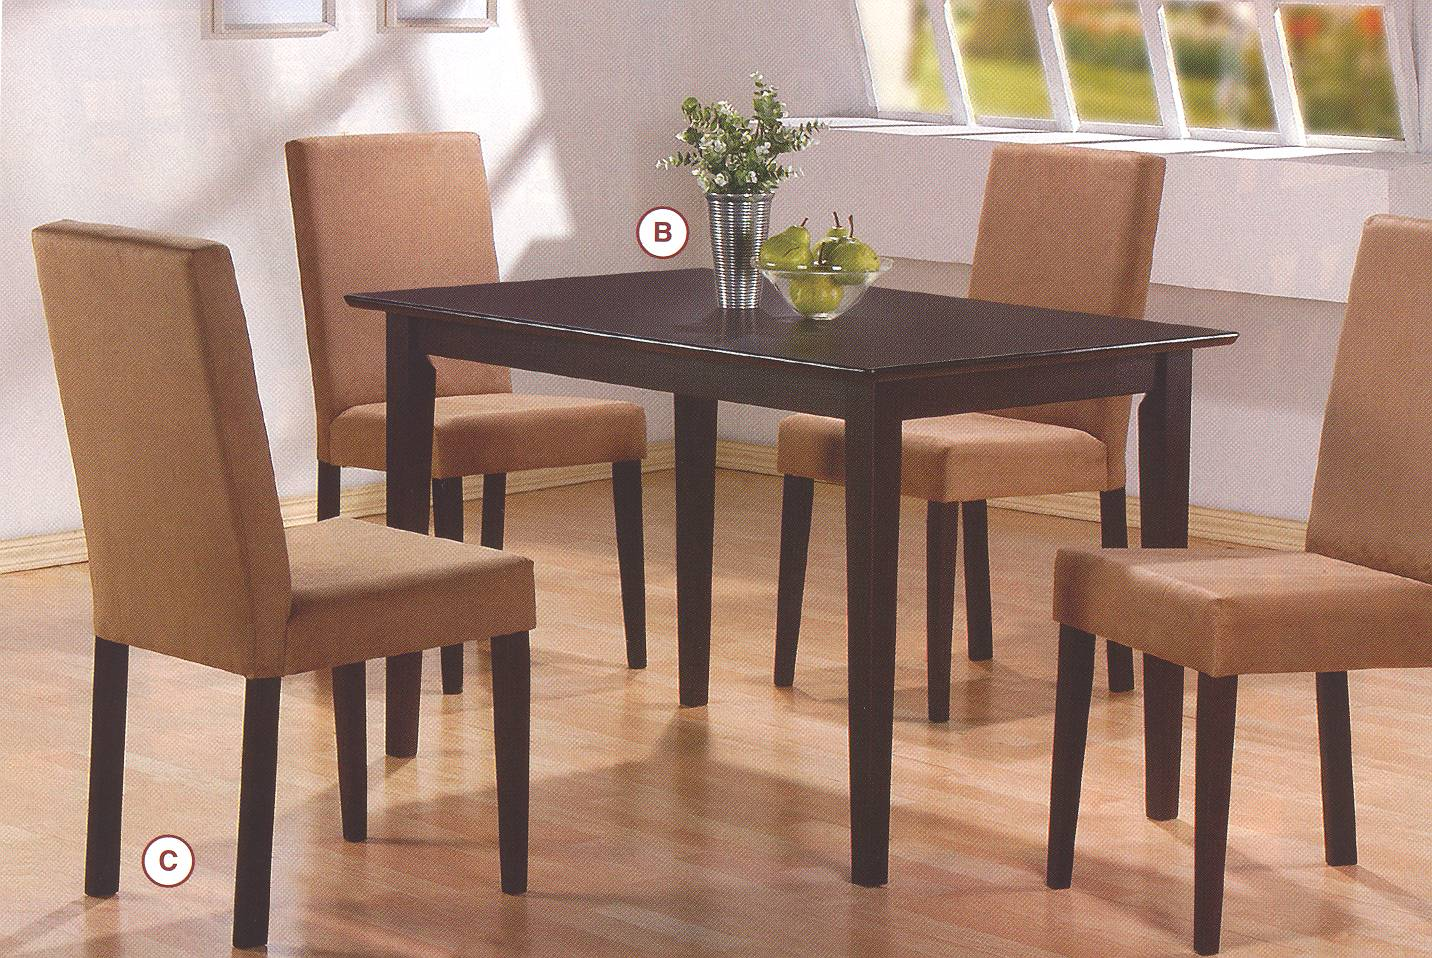 Dining room furniture wilmington nc furniture store for Dining room furniture stores